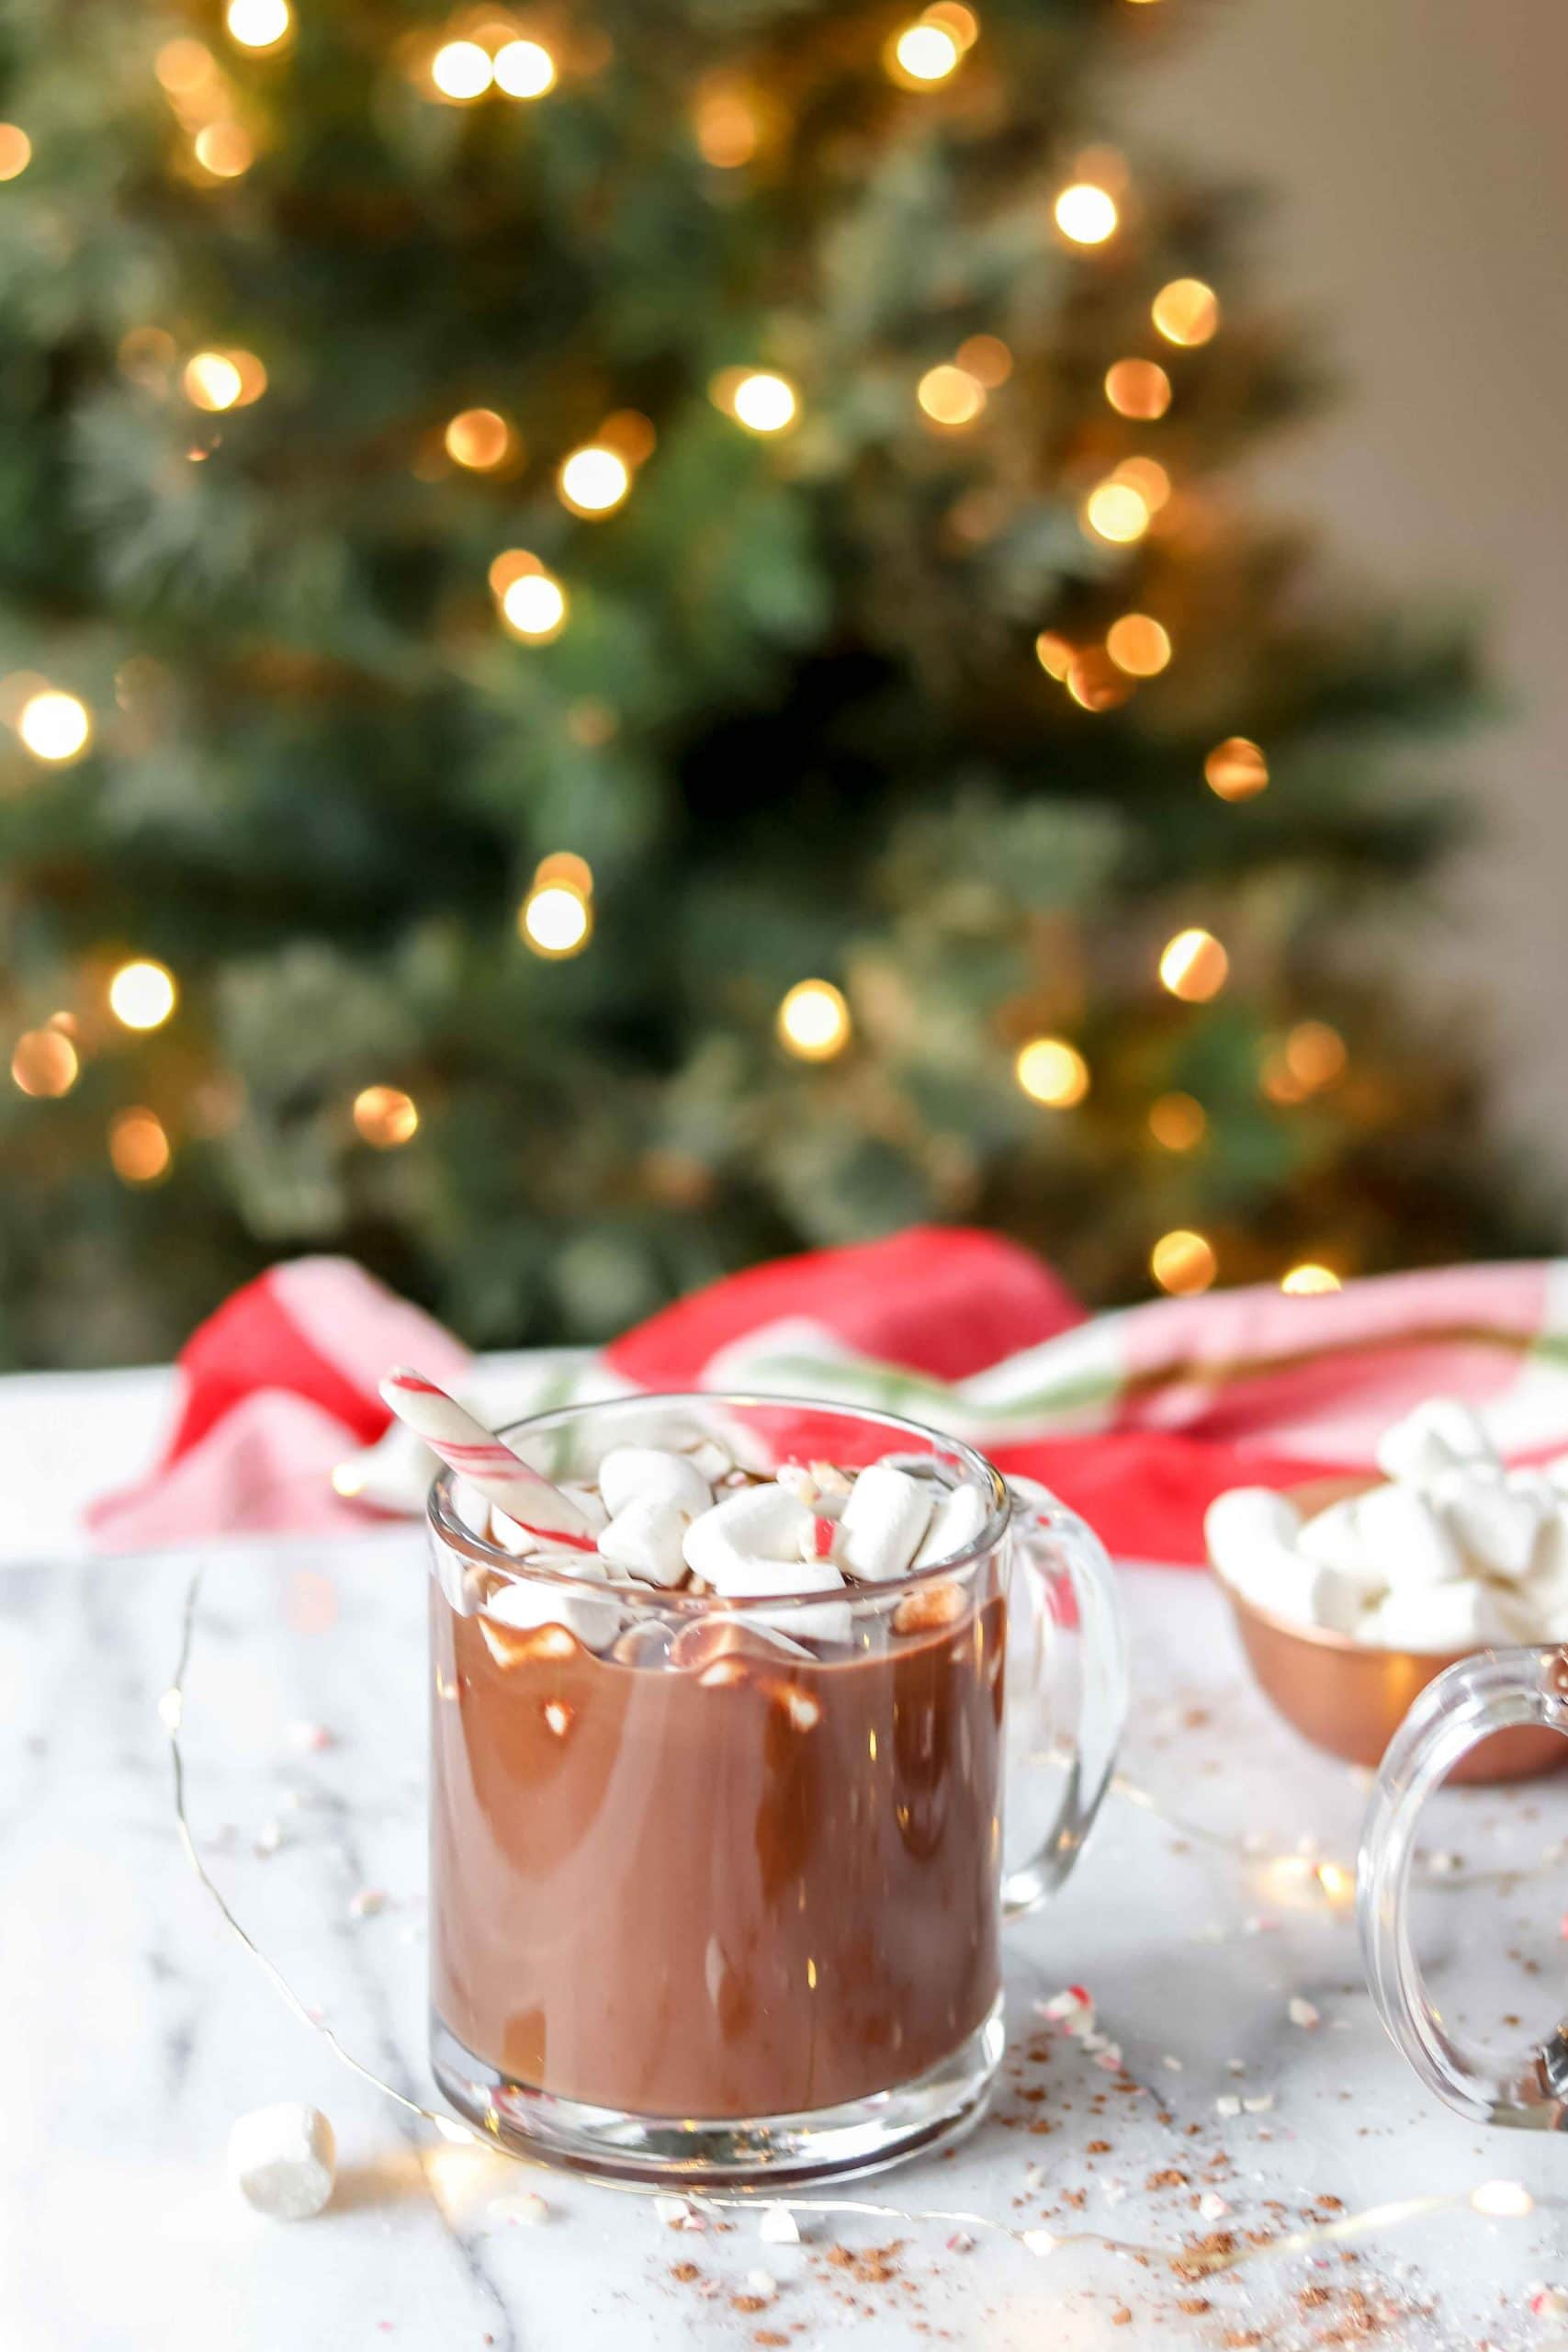 Image of a glass of Paleo Peppermint Hot Chocolate topped with marshmallows and candy cane.  There is a Christmas tree and red towel in the background.  www.atwistedplate.com/paleo-peppermint-hot-chocolate/